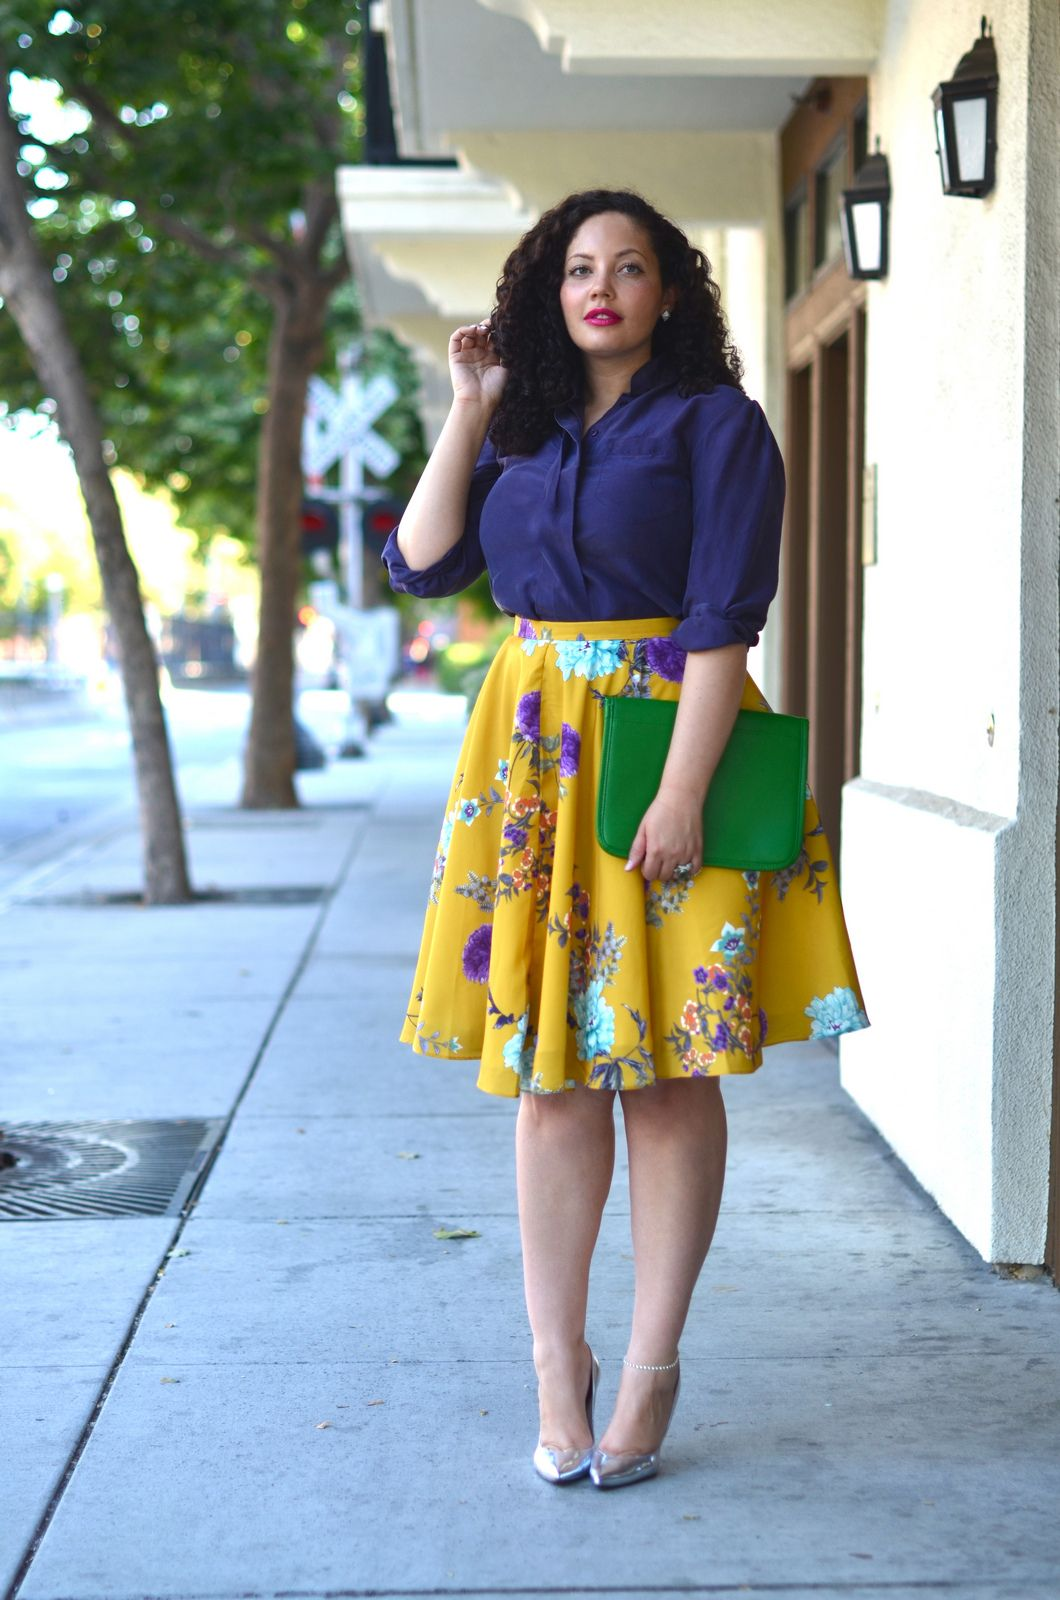 6675c94fbde5d Modcloth Skirt Big beautiful curvy women